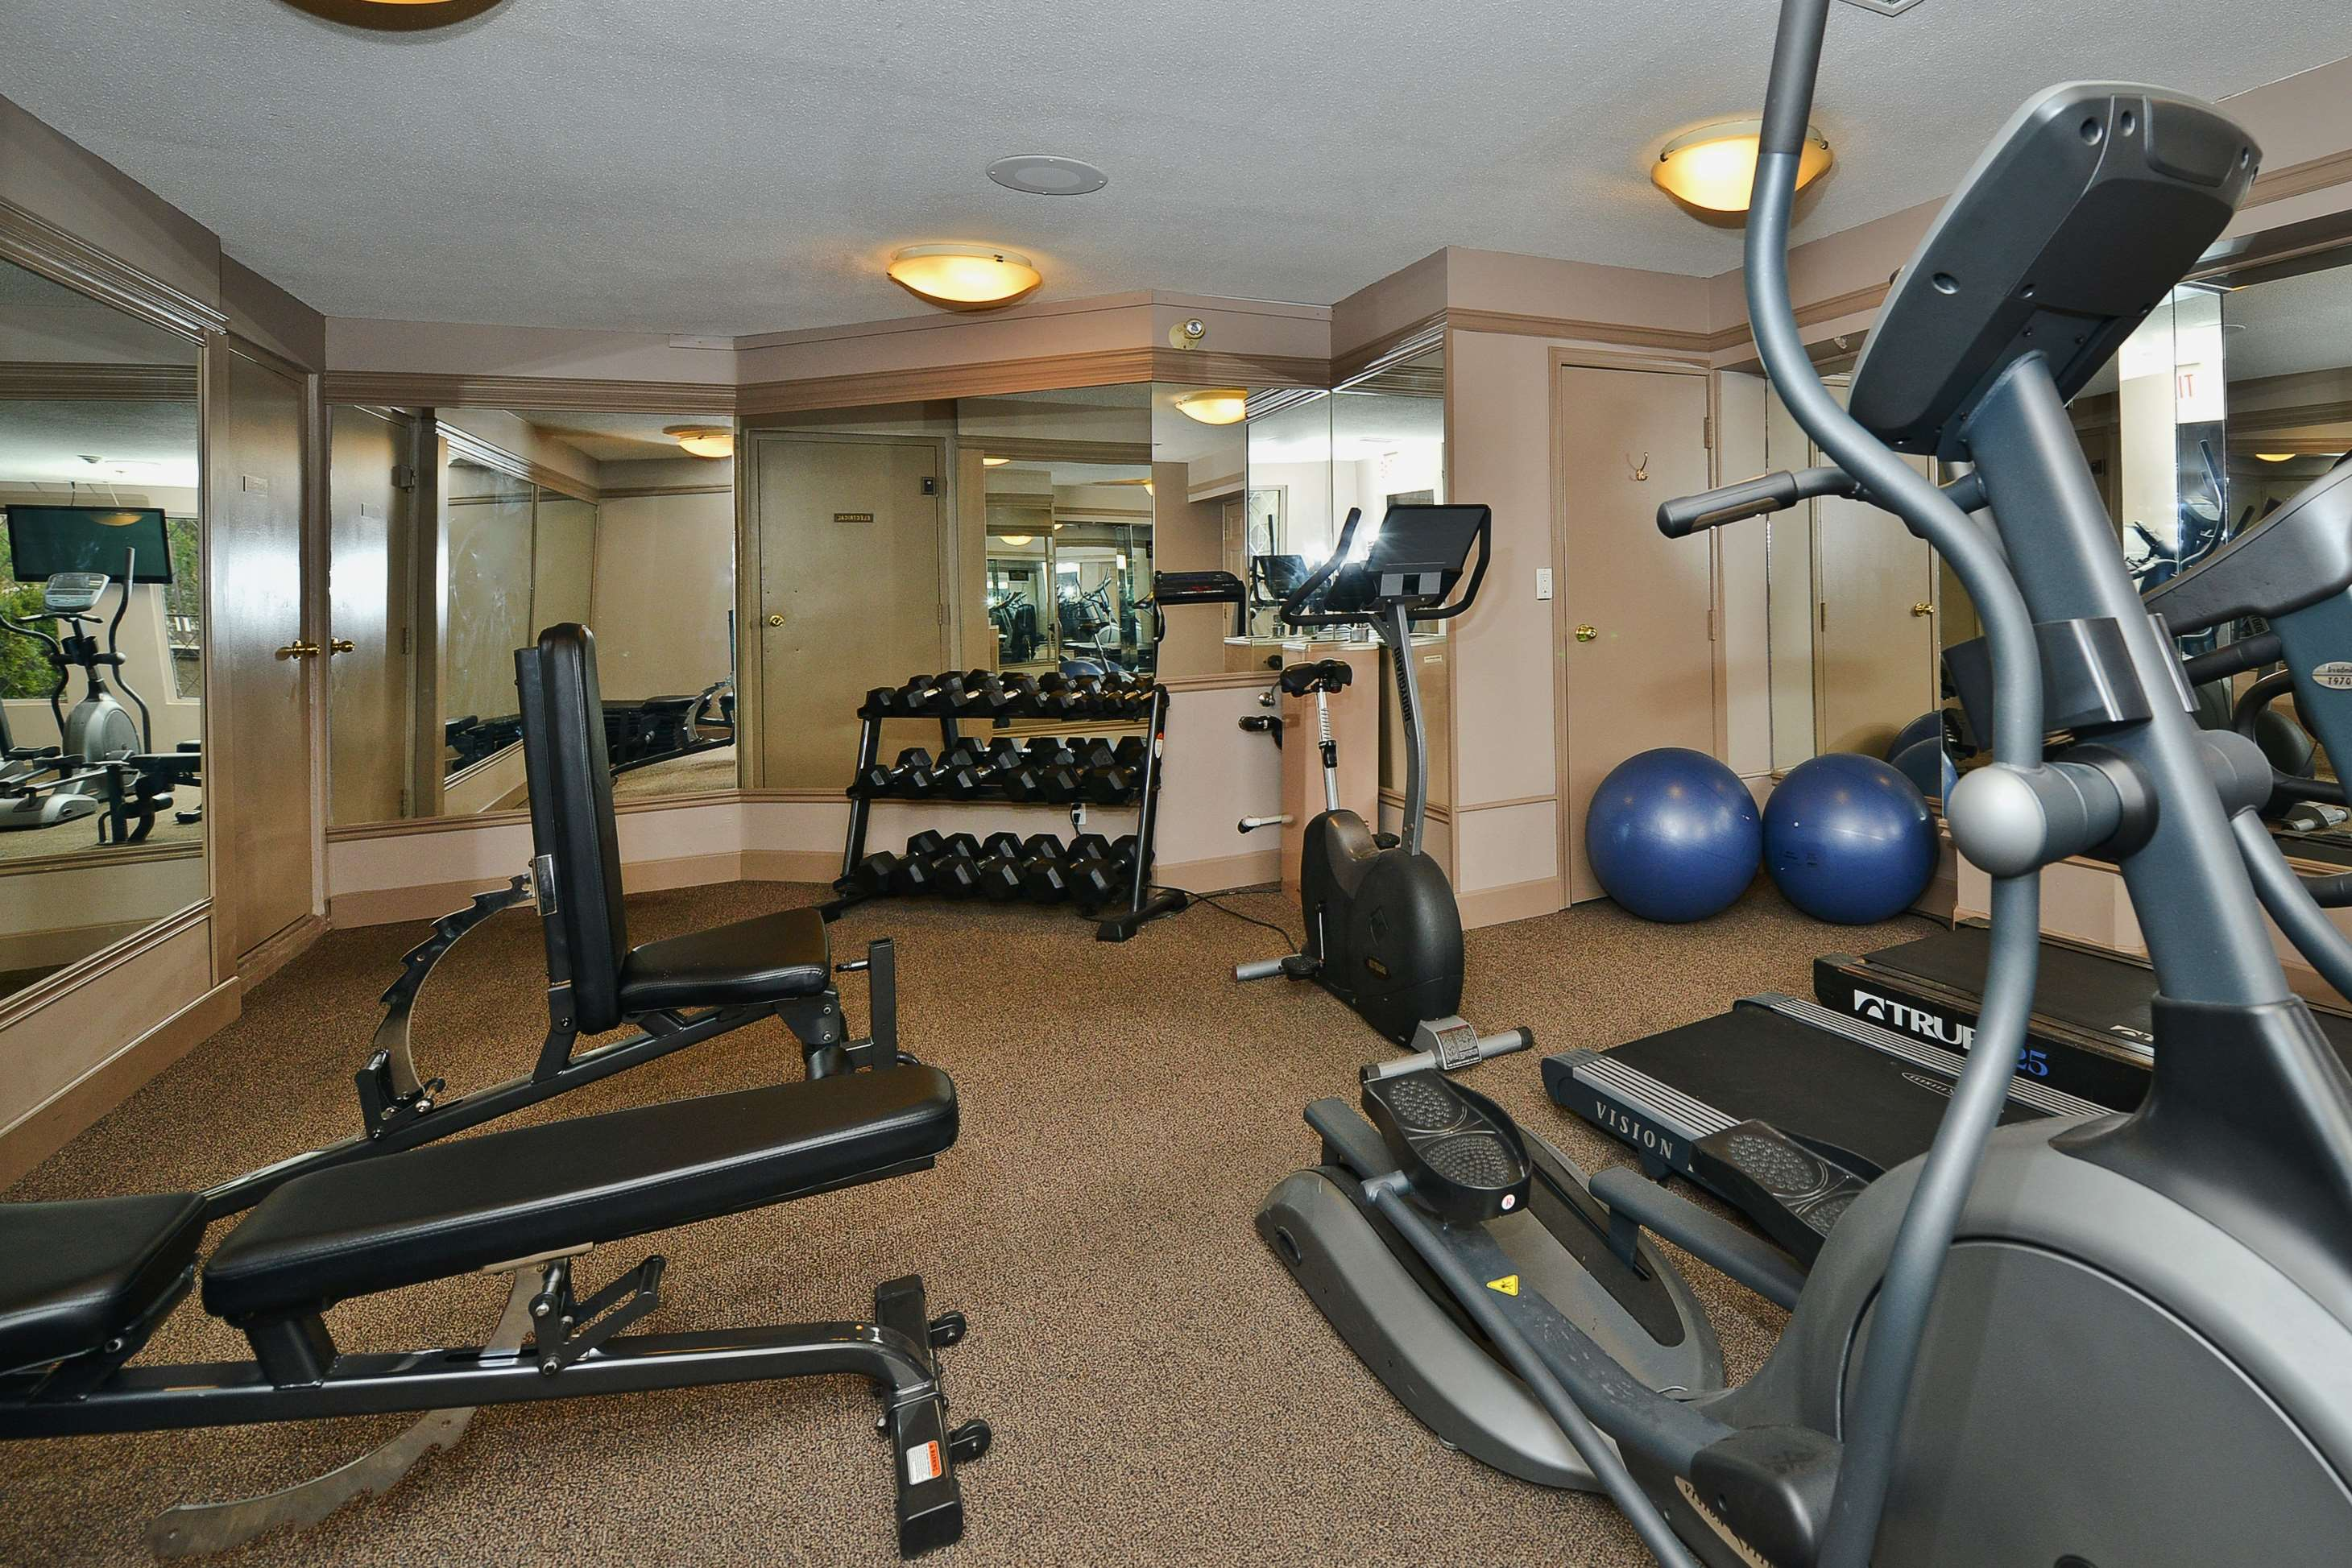 Prestige Beach House, BW Premier Collection in Kelowna: Fitness Centre